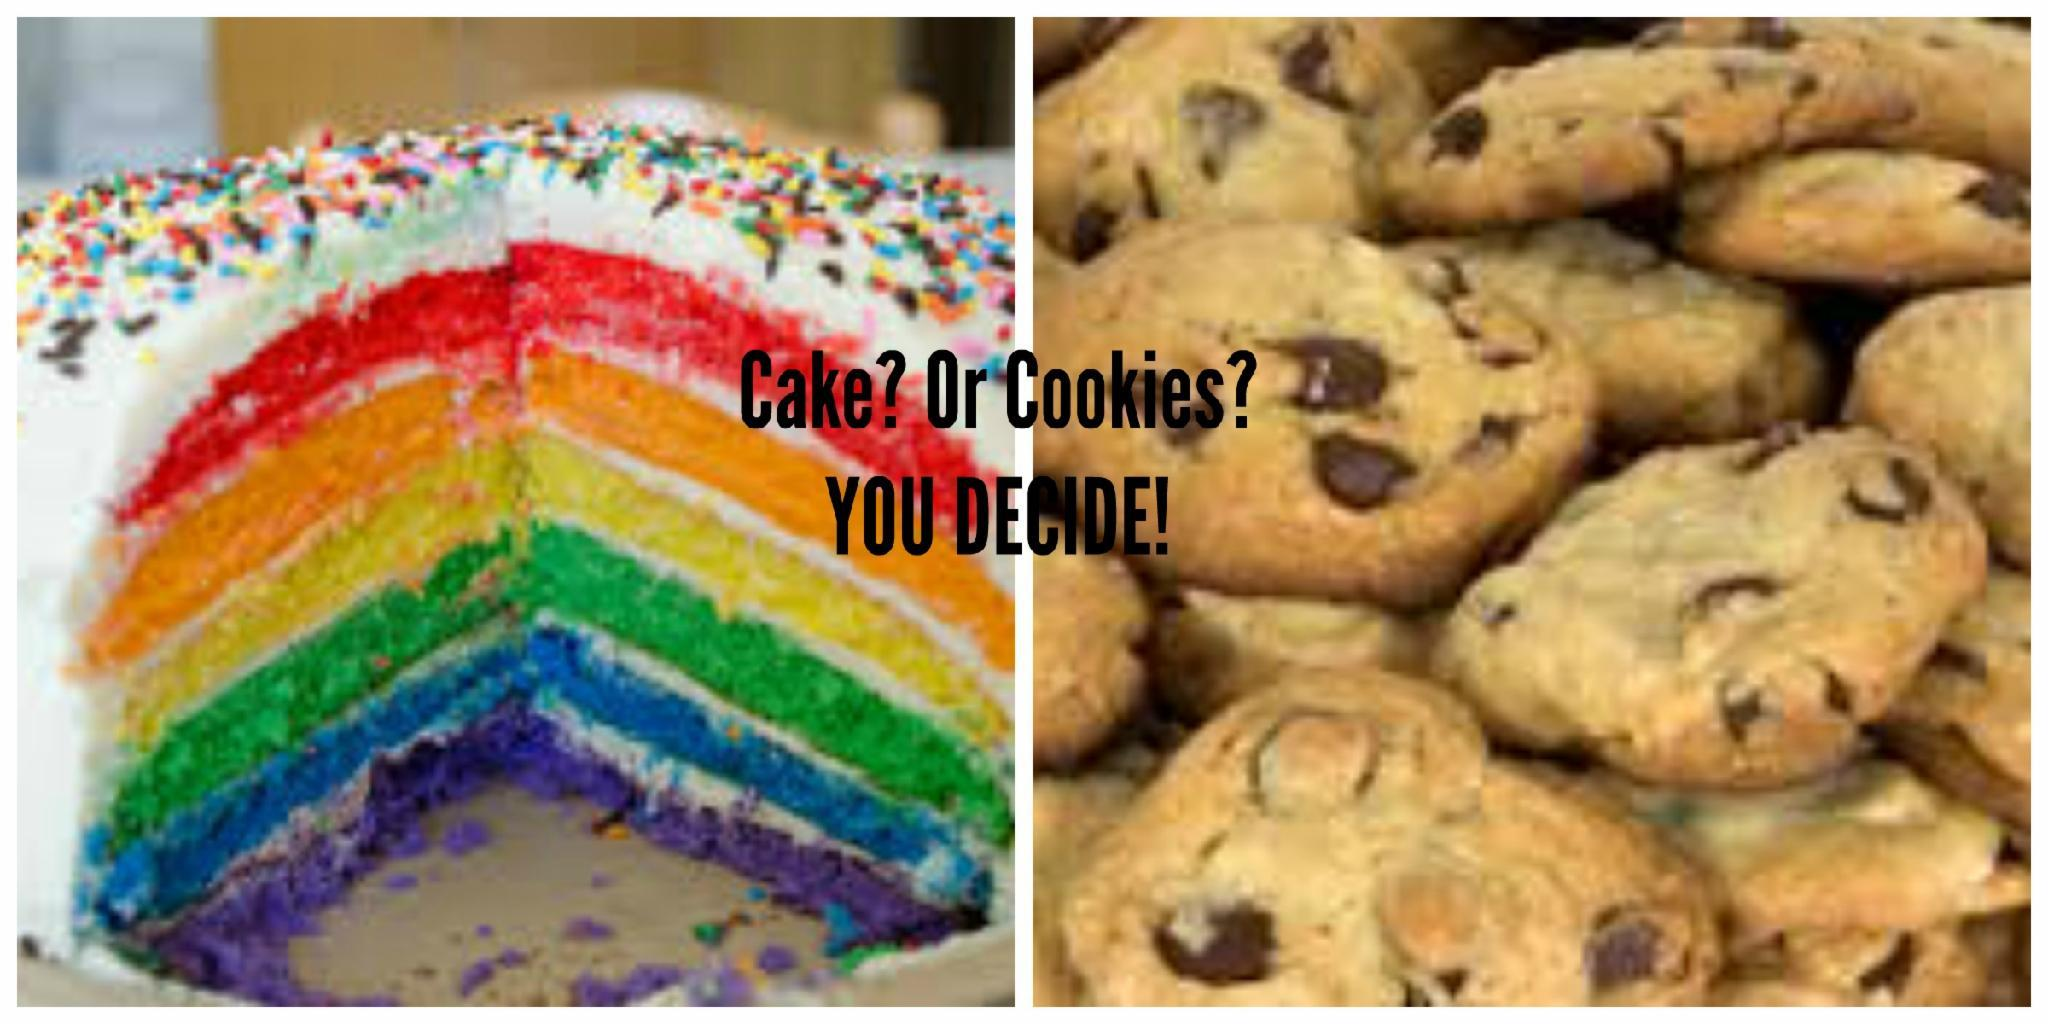 Cake or Cookies?